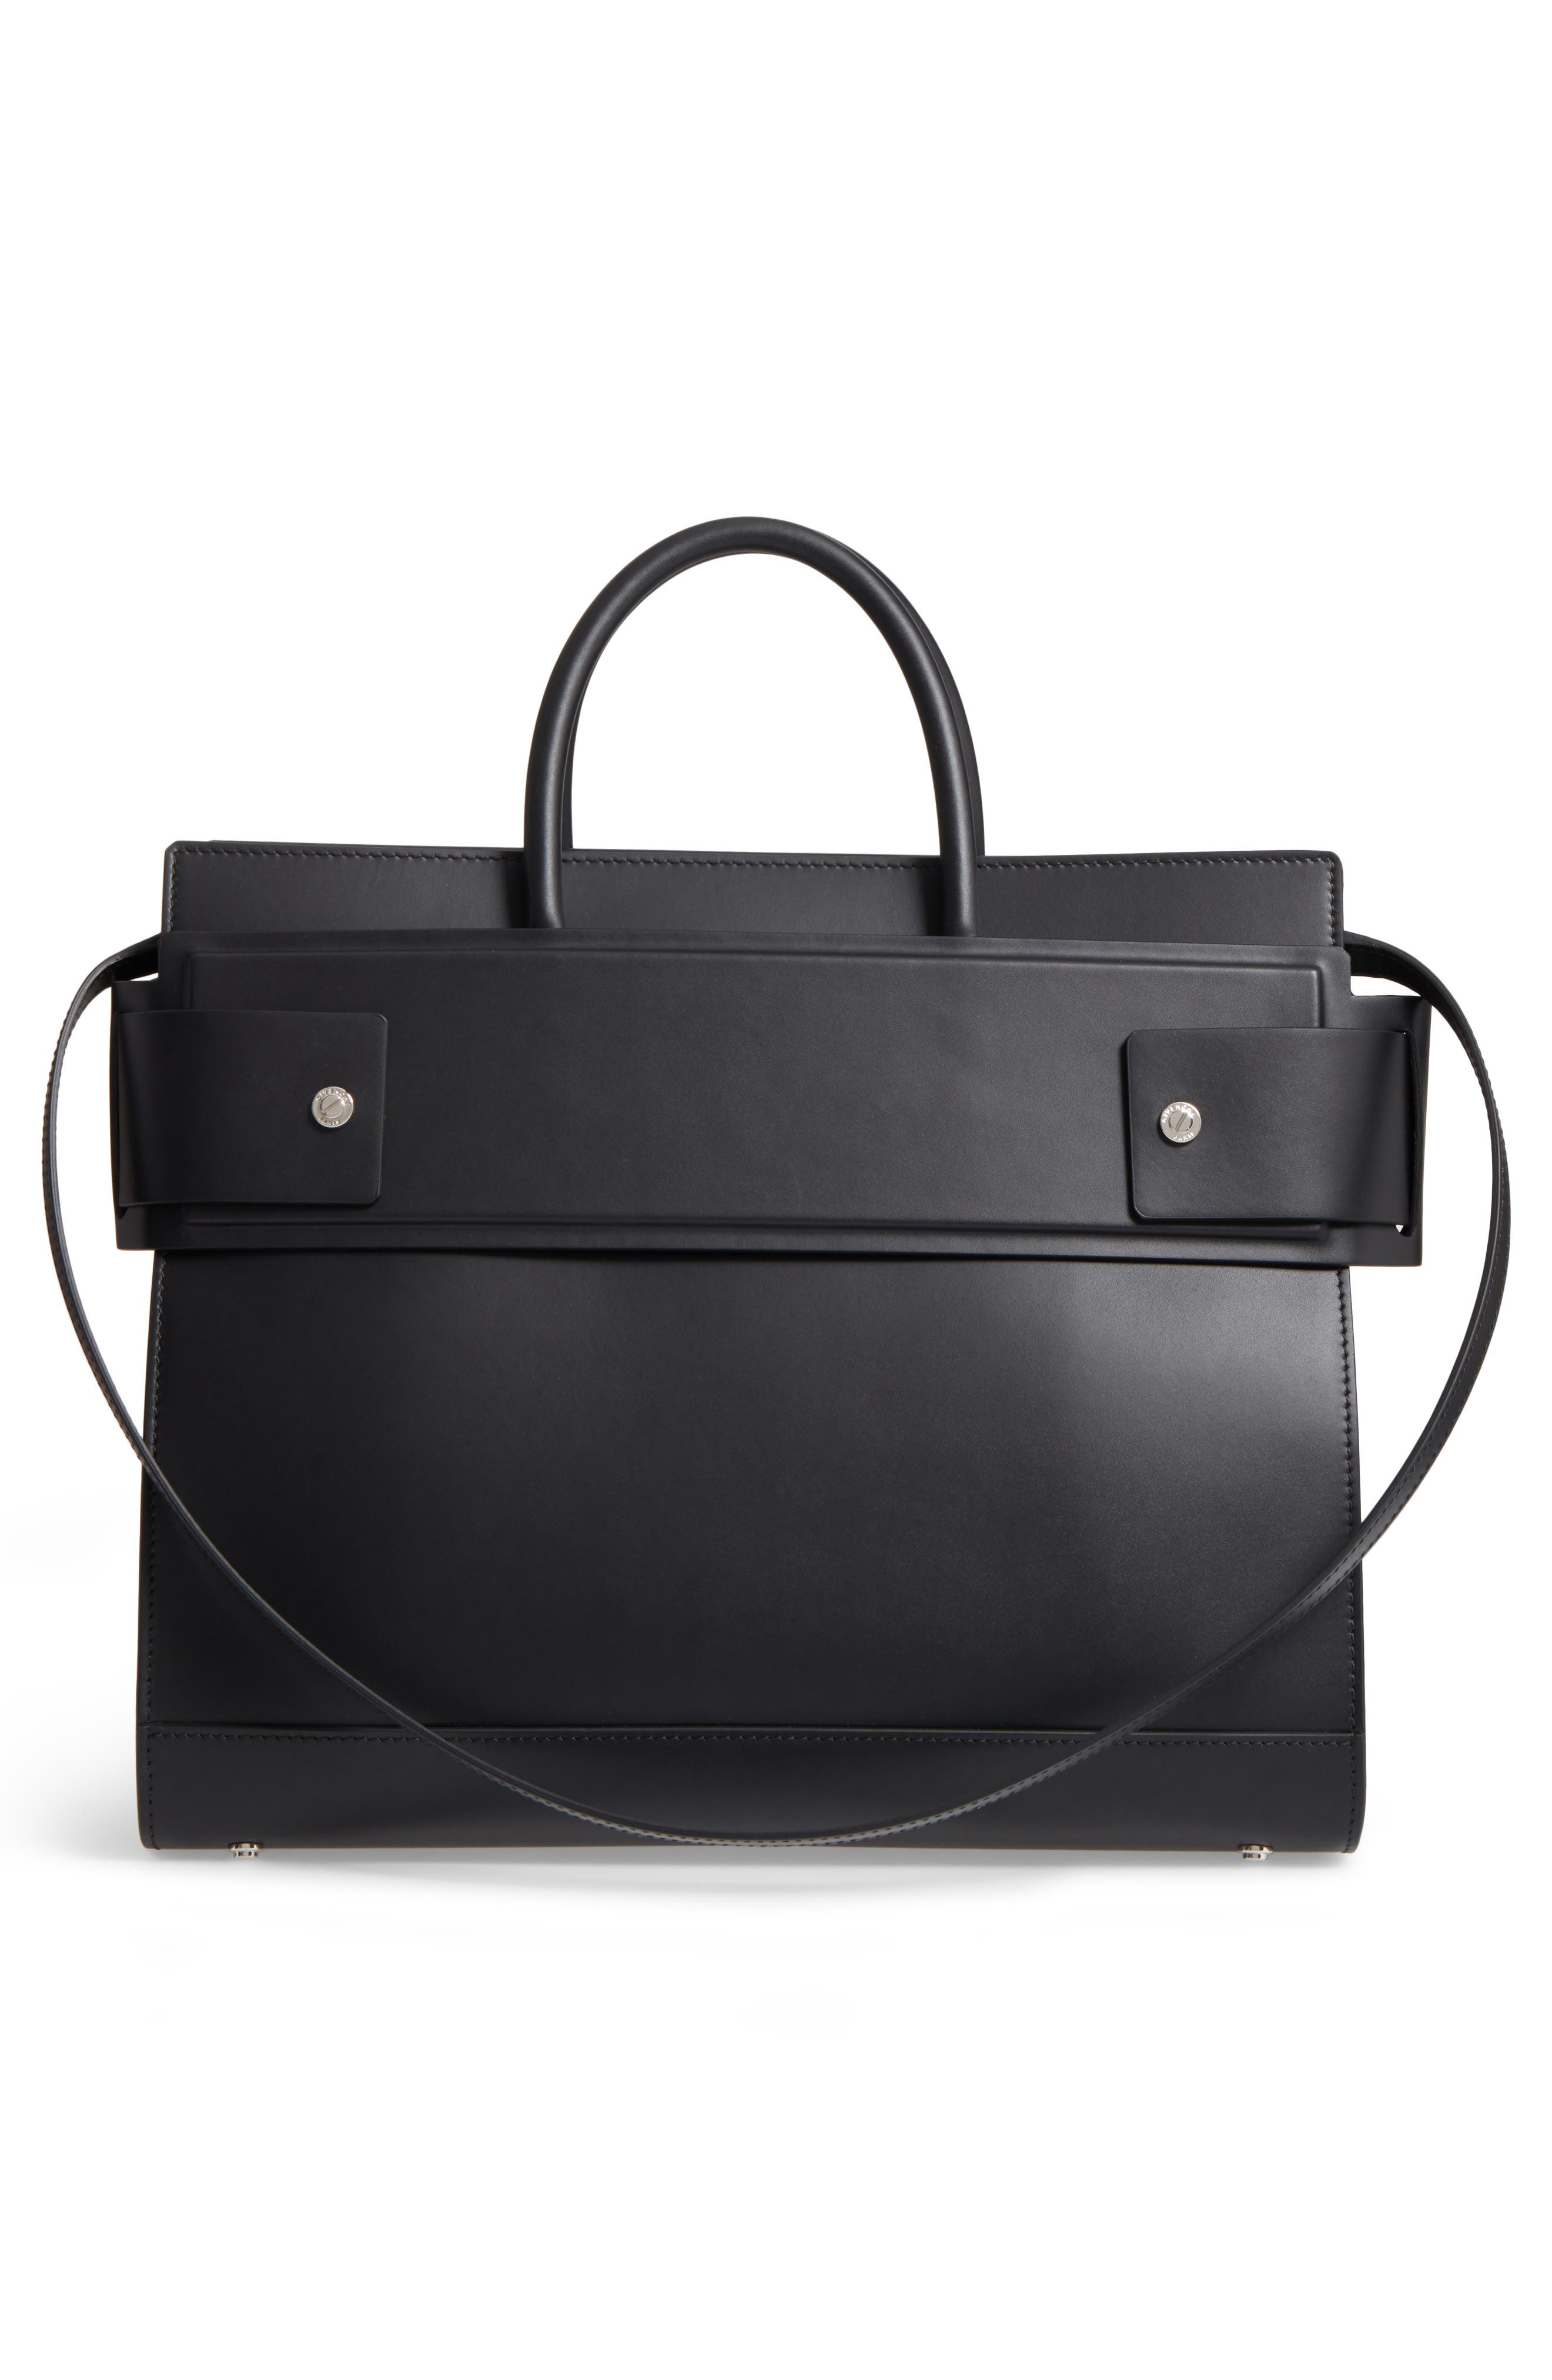 Horizon Calfskin Leather Tote,                             Alternate thumbnail 3, color,                             BLACK